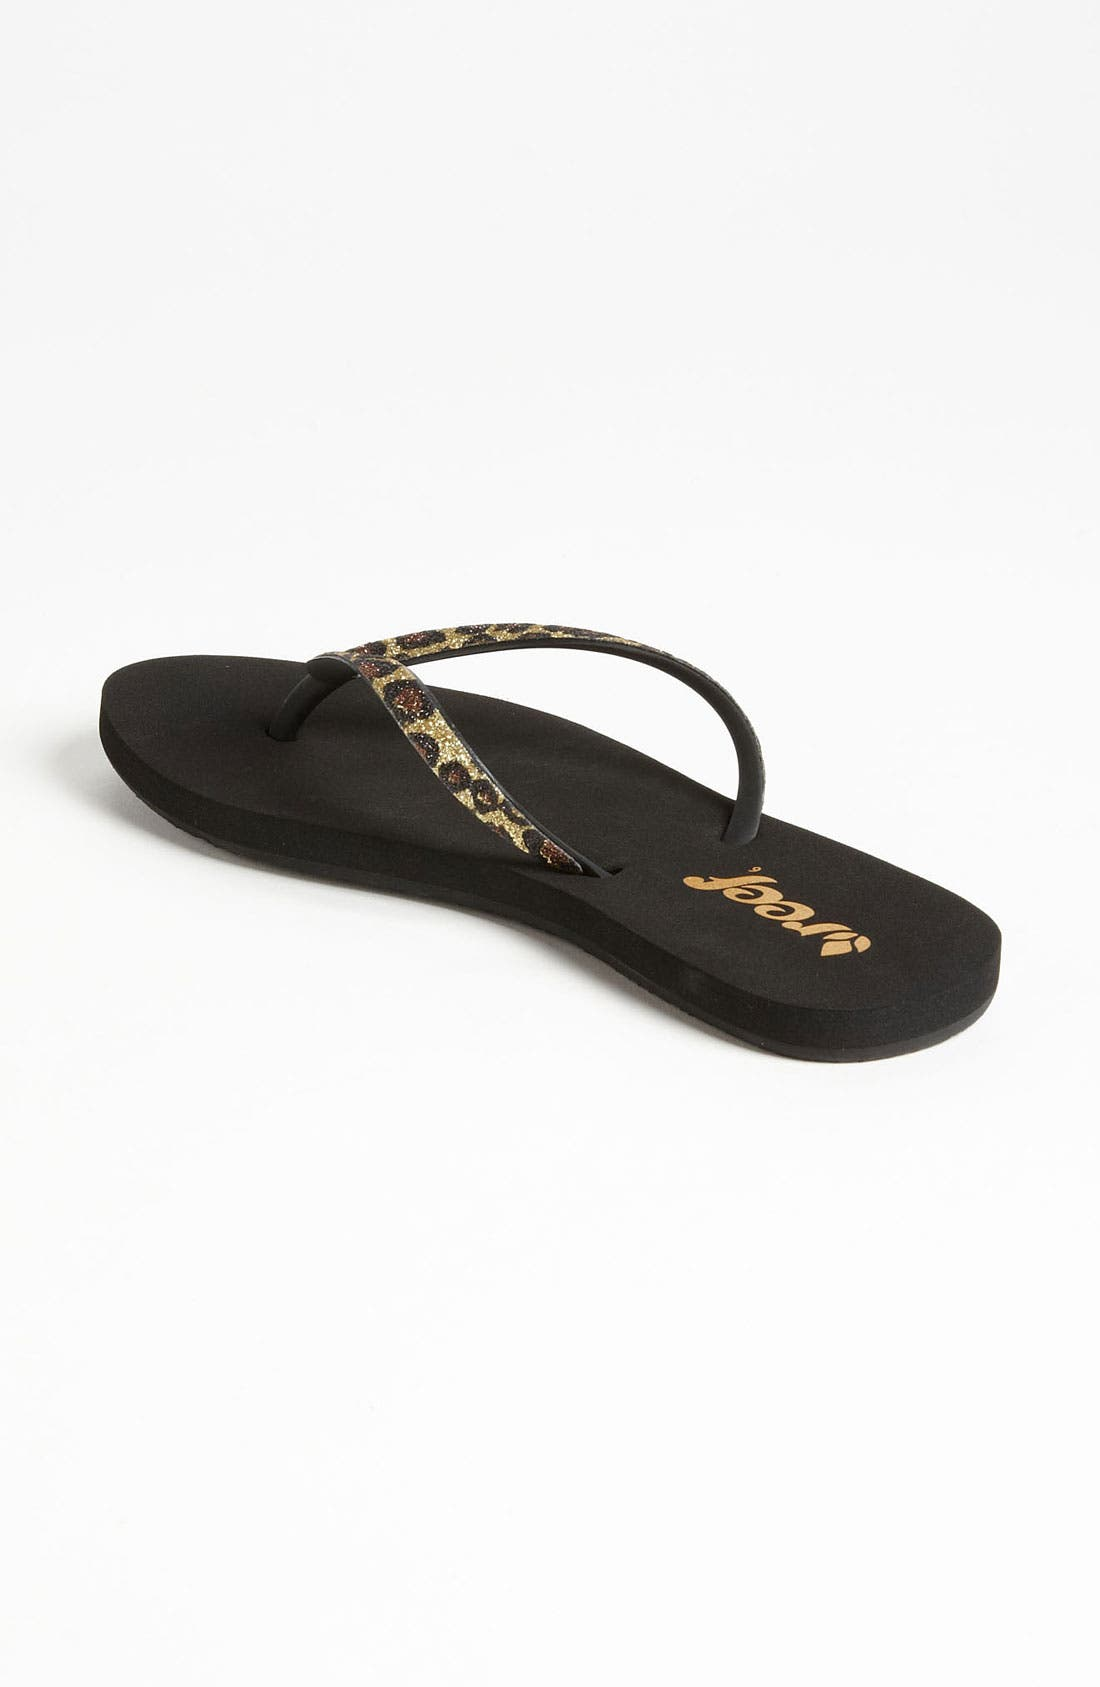 Alternate Image 2  - Reef 'Stargazer Luxe' Flip Flop (Women)